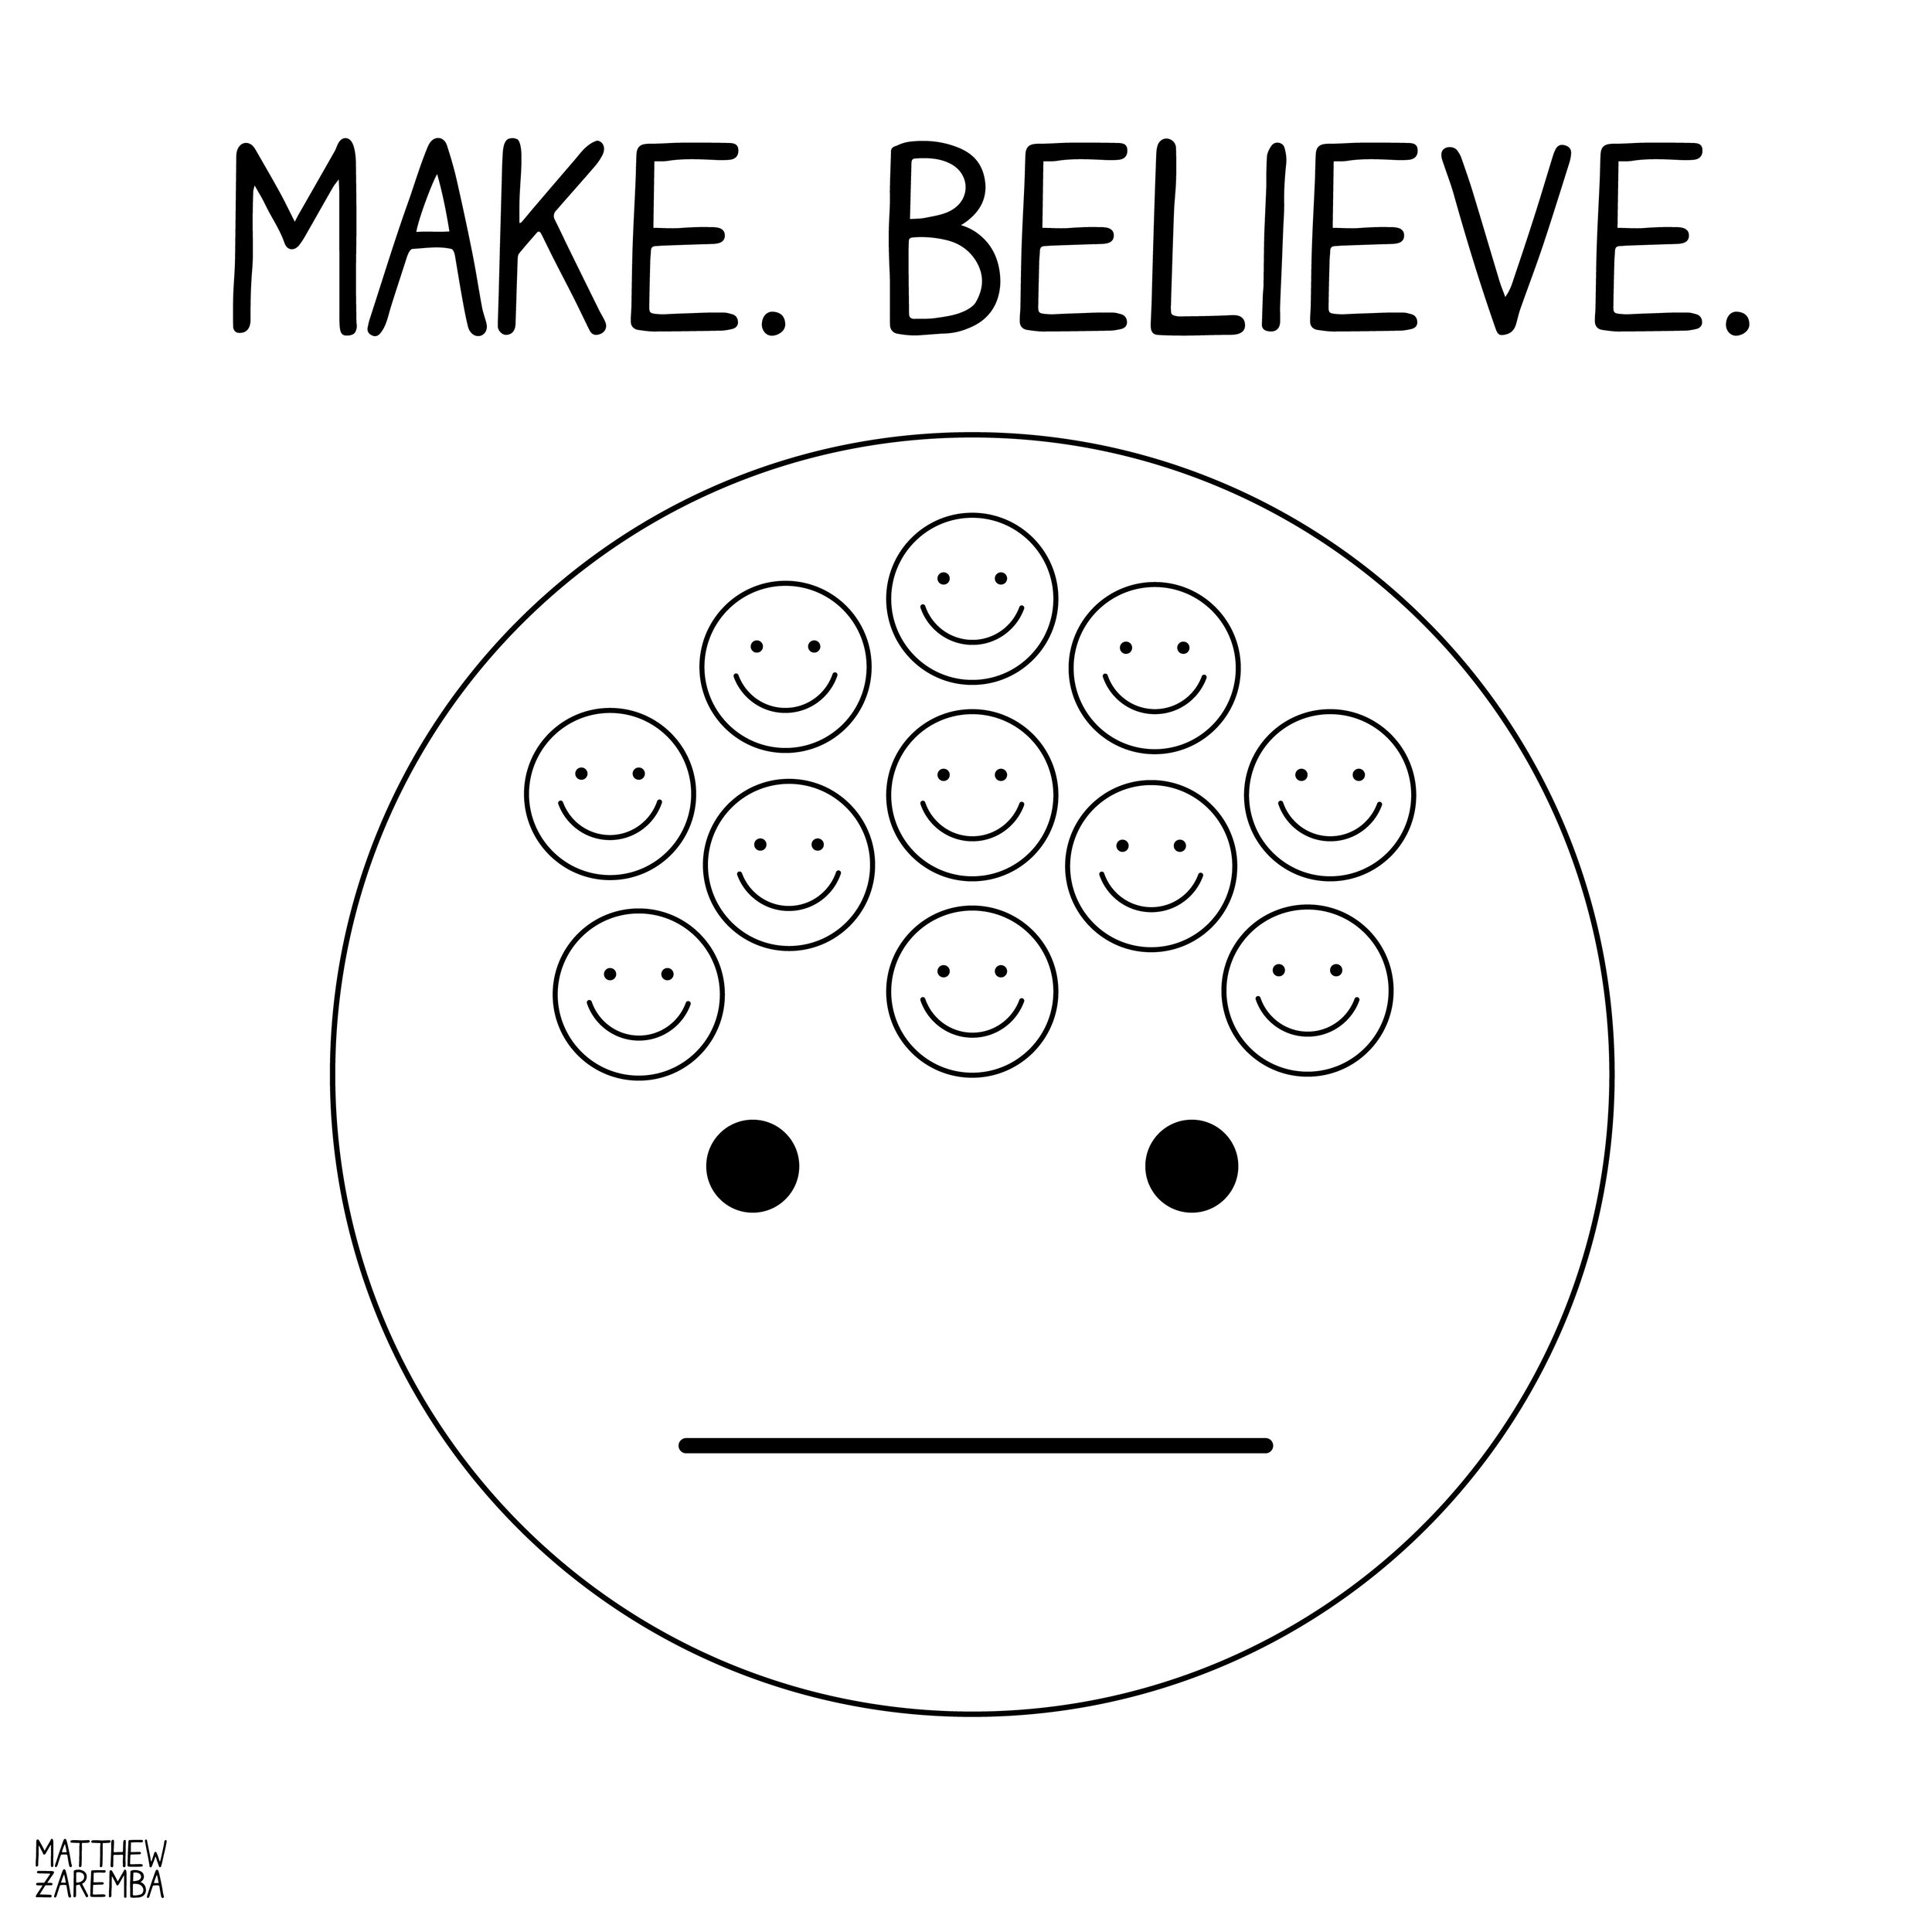 MAKEBELIEVE-01.jpg